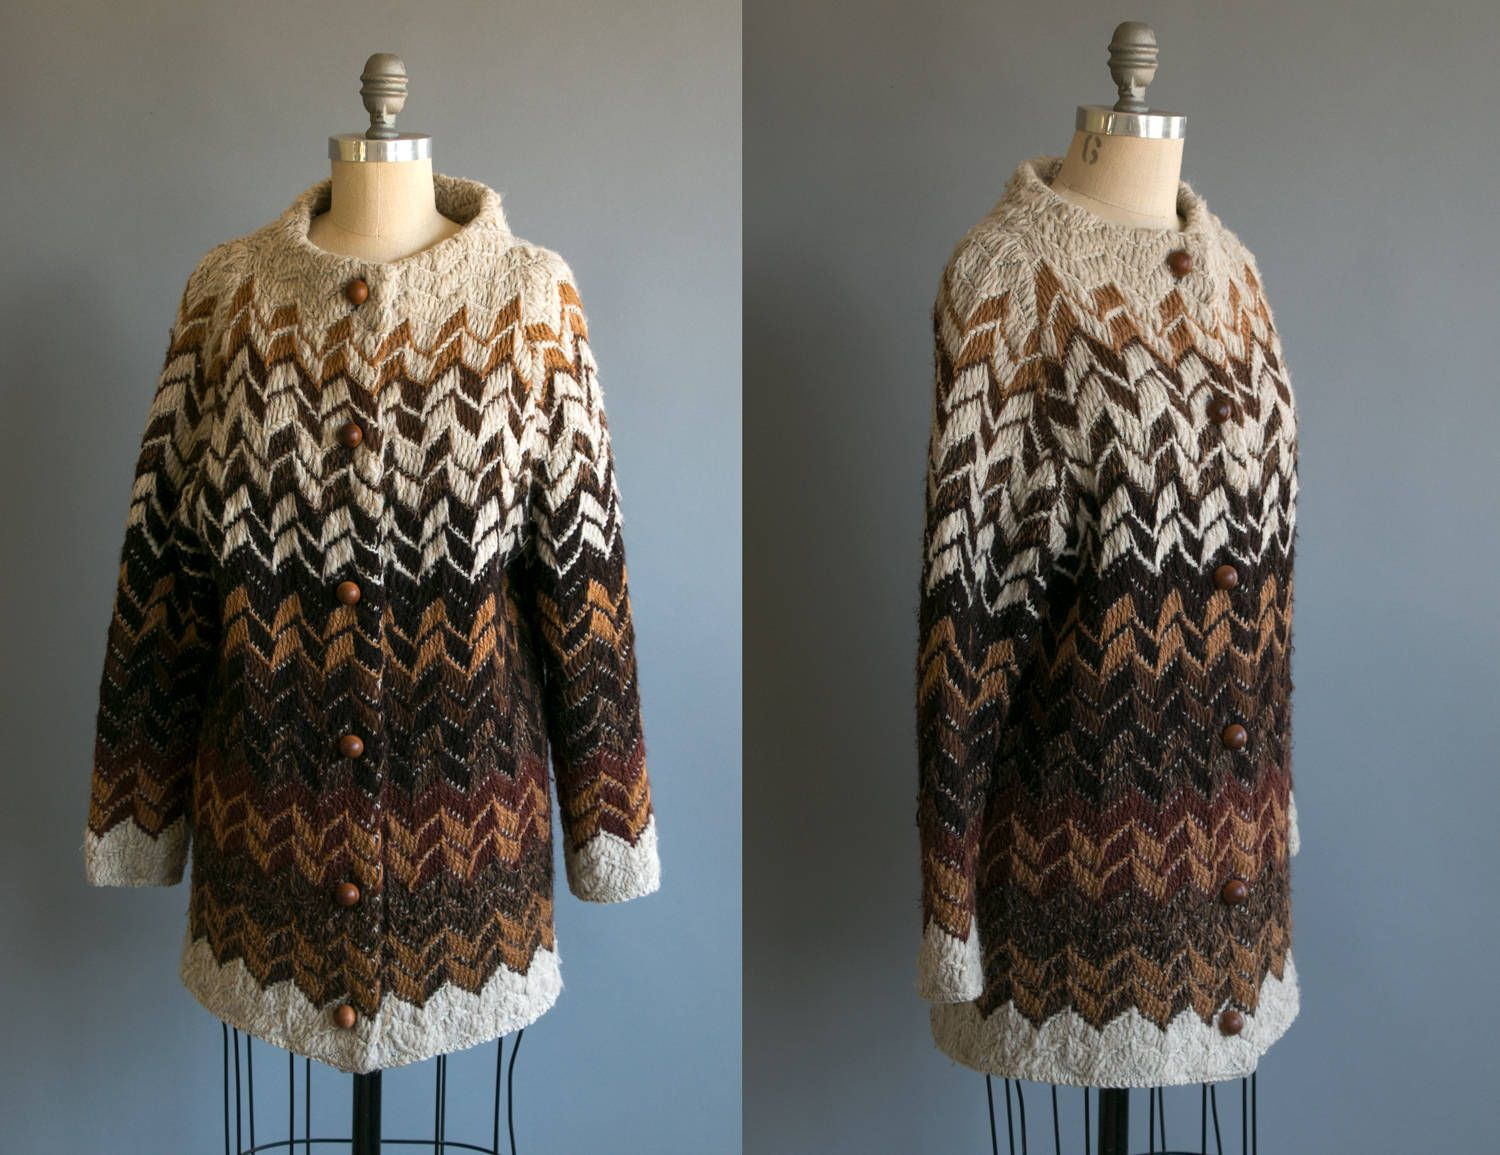 Vintage 1970's Long Zig Zag Pure Wool Woven Sweater with Round Wool Buttons/ Women's Retro Bohemian Size Medium Large by thiefislandvintage on Etsy